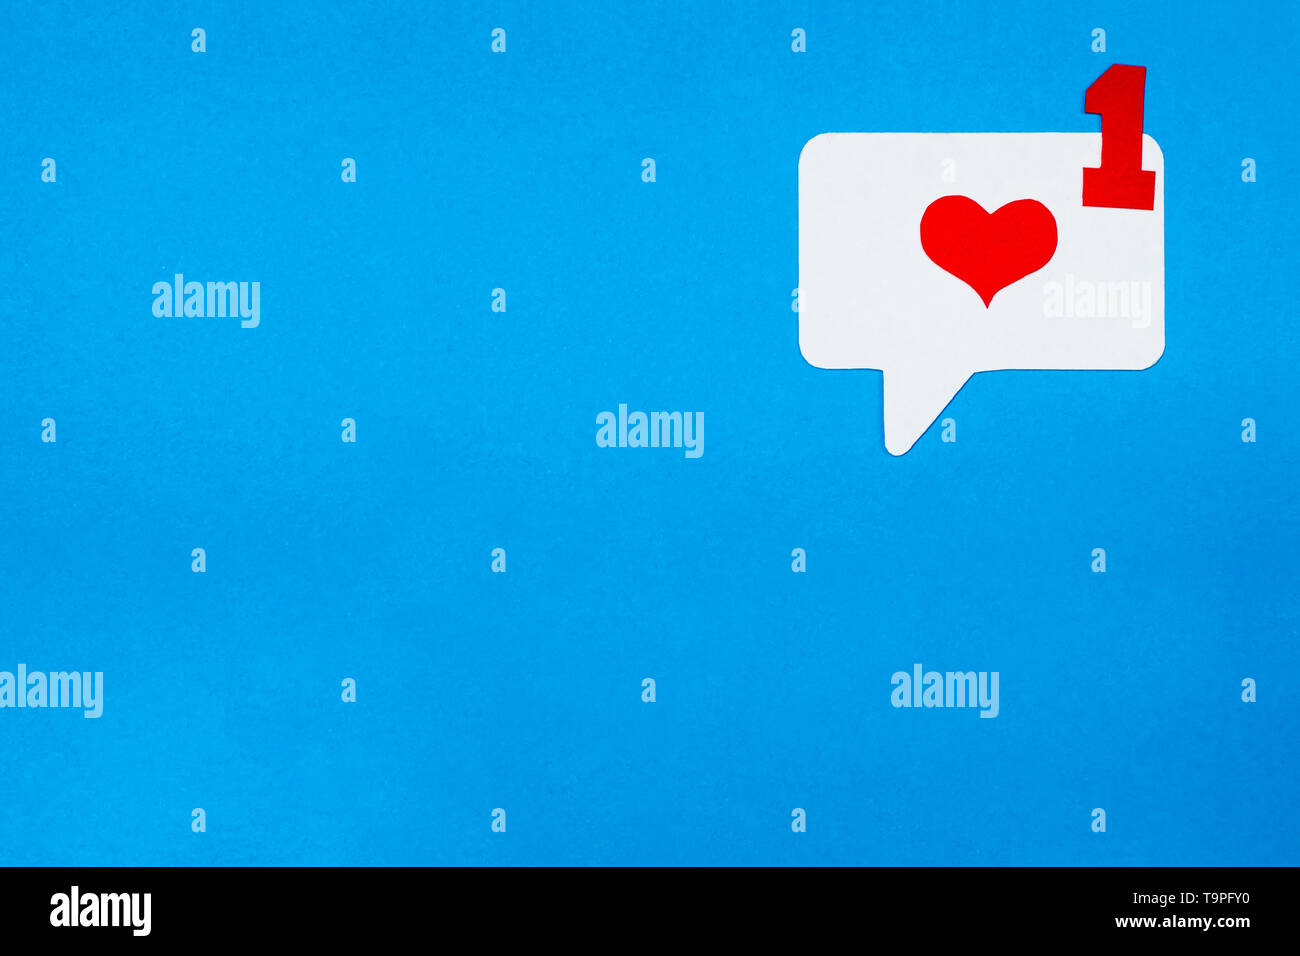 Love correspondence in electronic form. Social media chat concept. - Stock Image